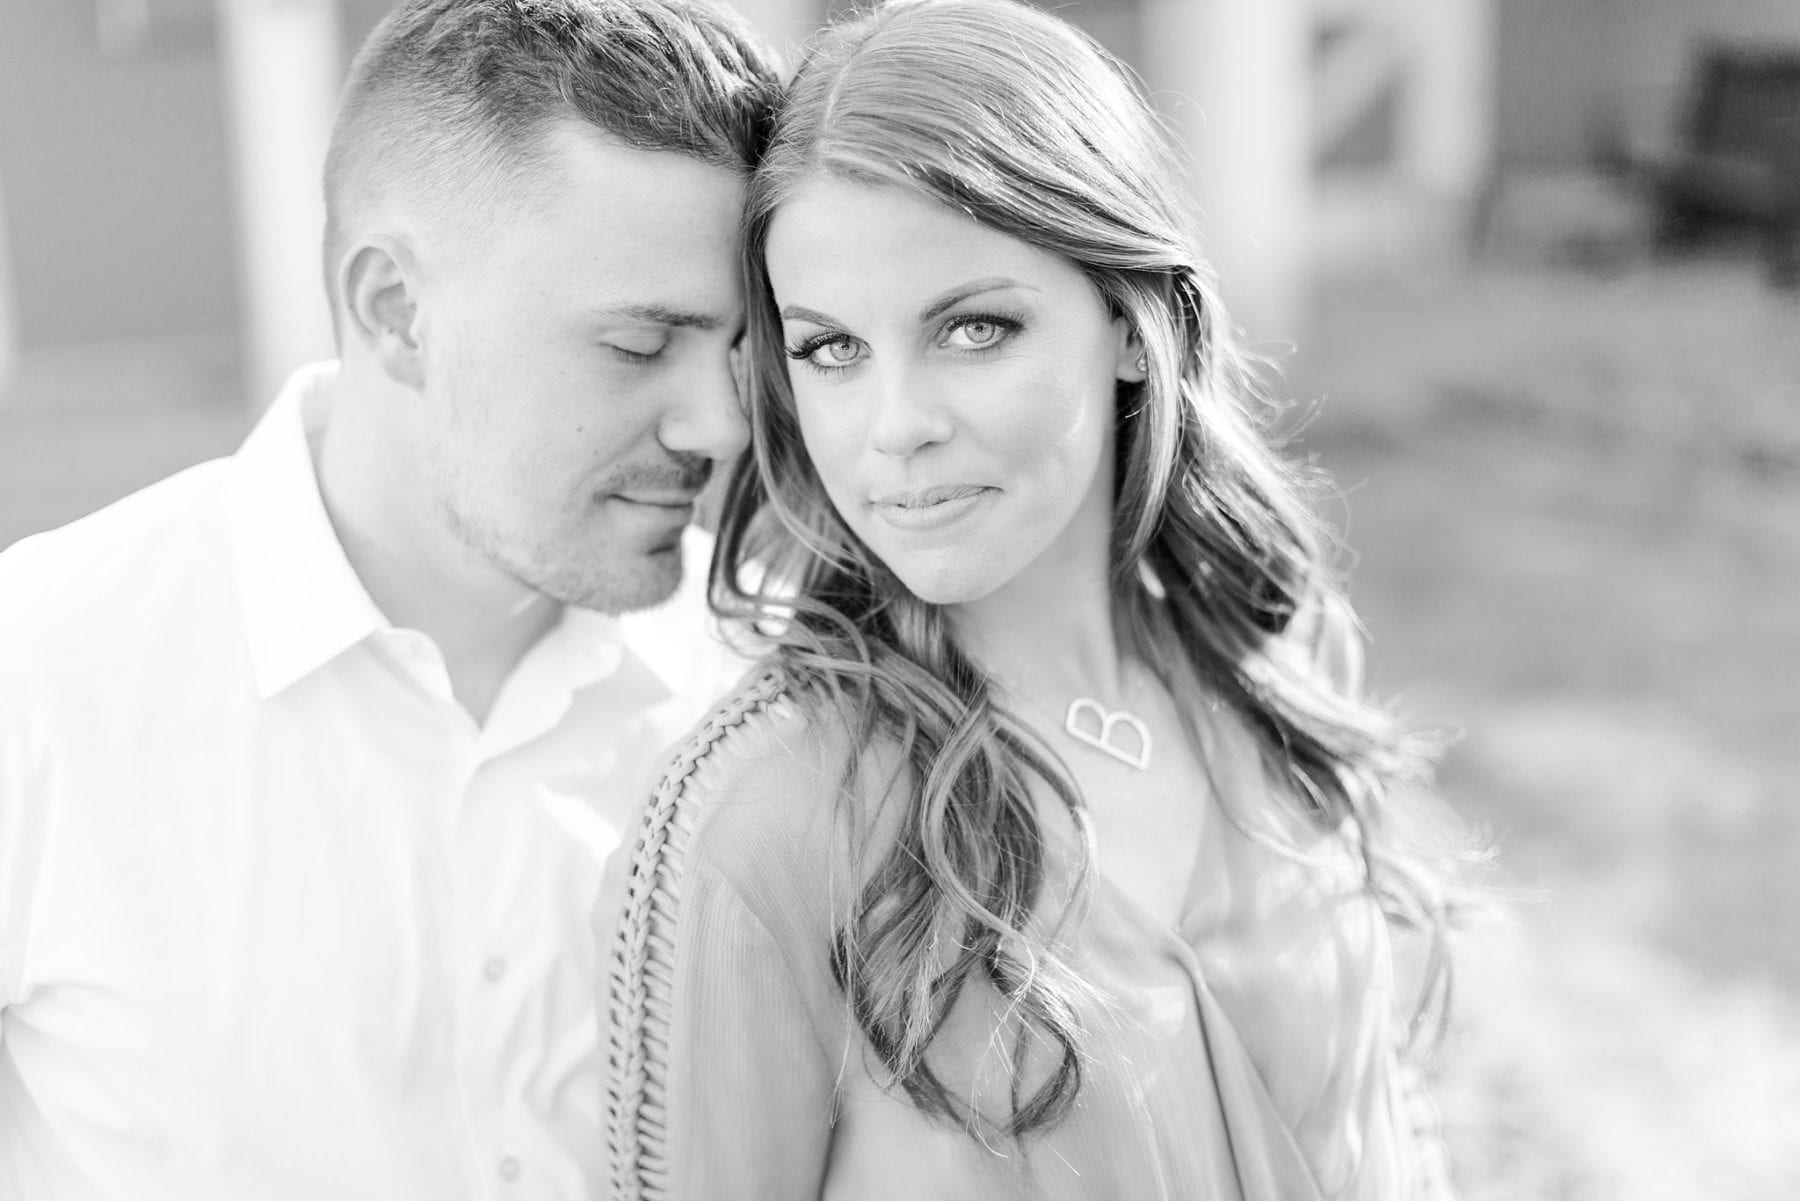 Goodstone Inn Engagement Session Virginia Wedding Photographer Megan Kelsey Photography-79.jpg